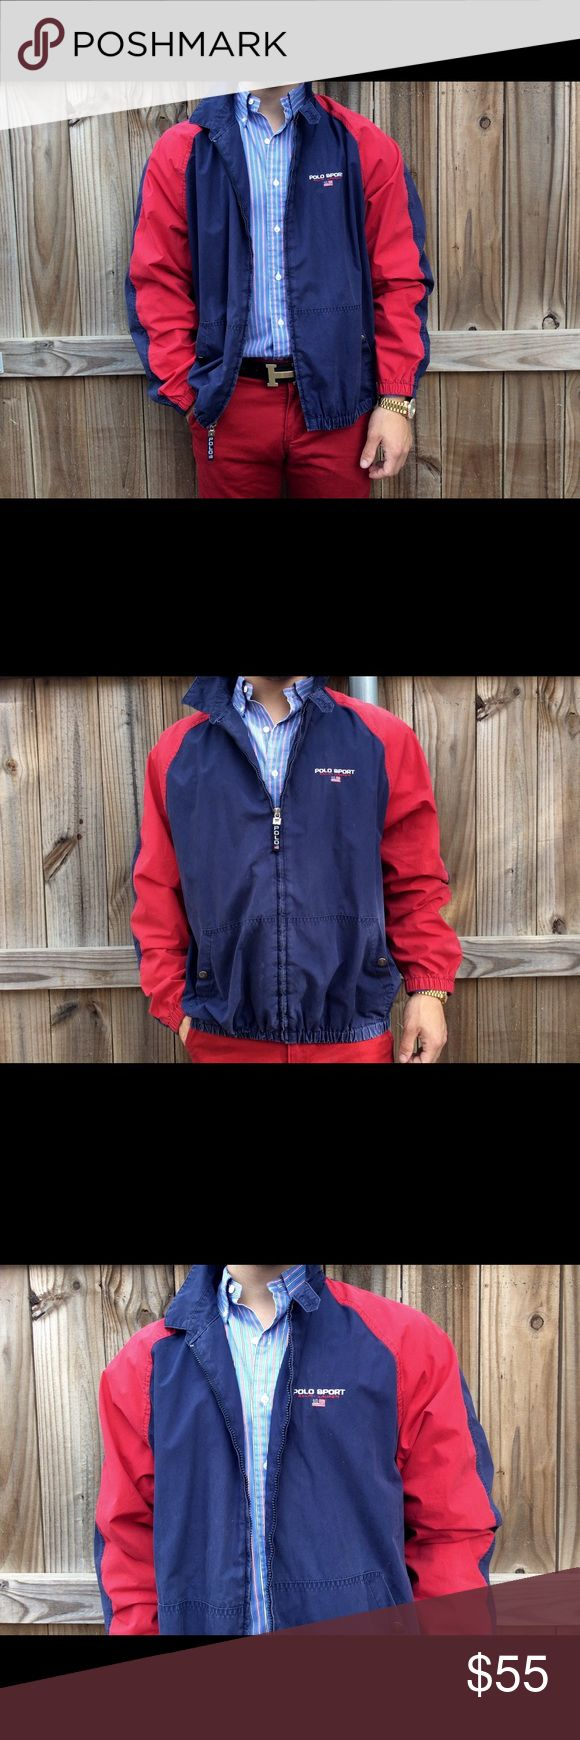 Polo Sport Ralph Lauren Jacket Medium Vintage Coat Polo Sport full zip Bomber jacket in men's size medium. Very well kept Condition Polo by Ralph Lauren Jackets & Coats Bomber & Varsity